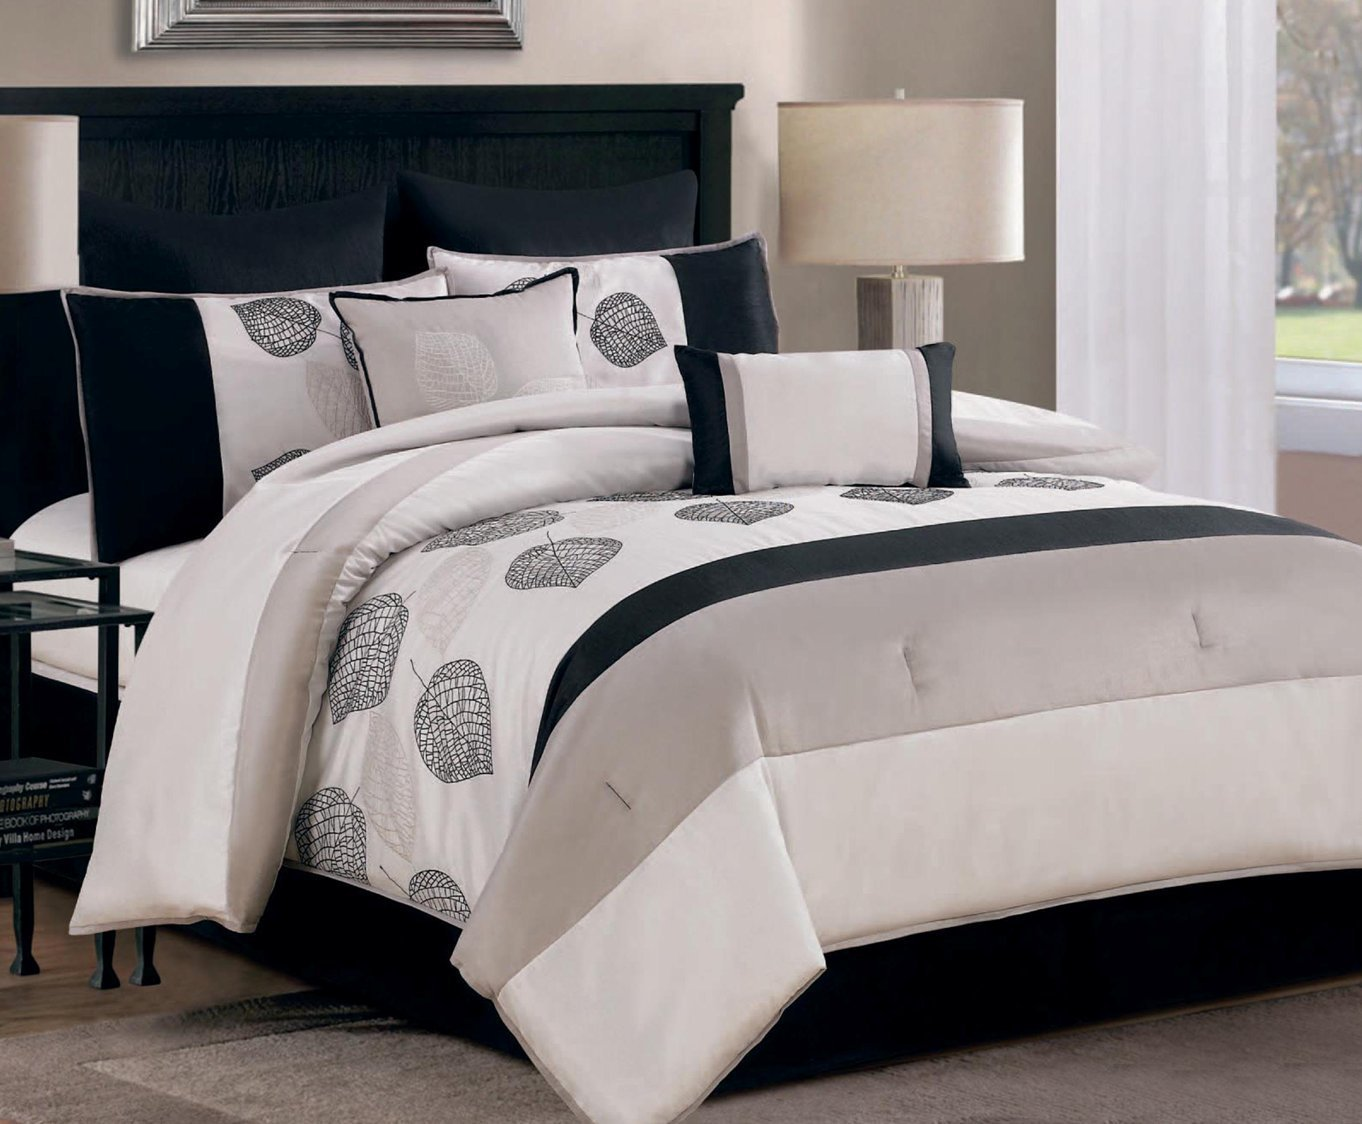 Get Quotations · King Comforter Embroidered Bedding Set, Black, Taupe And  Cream Leaves   8 Piece